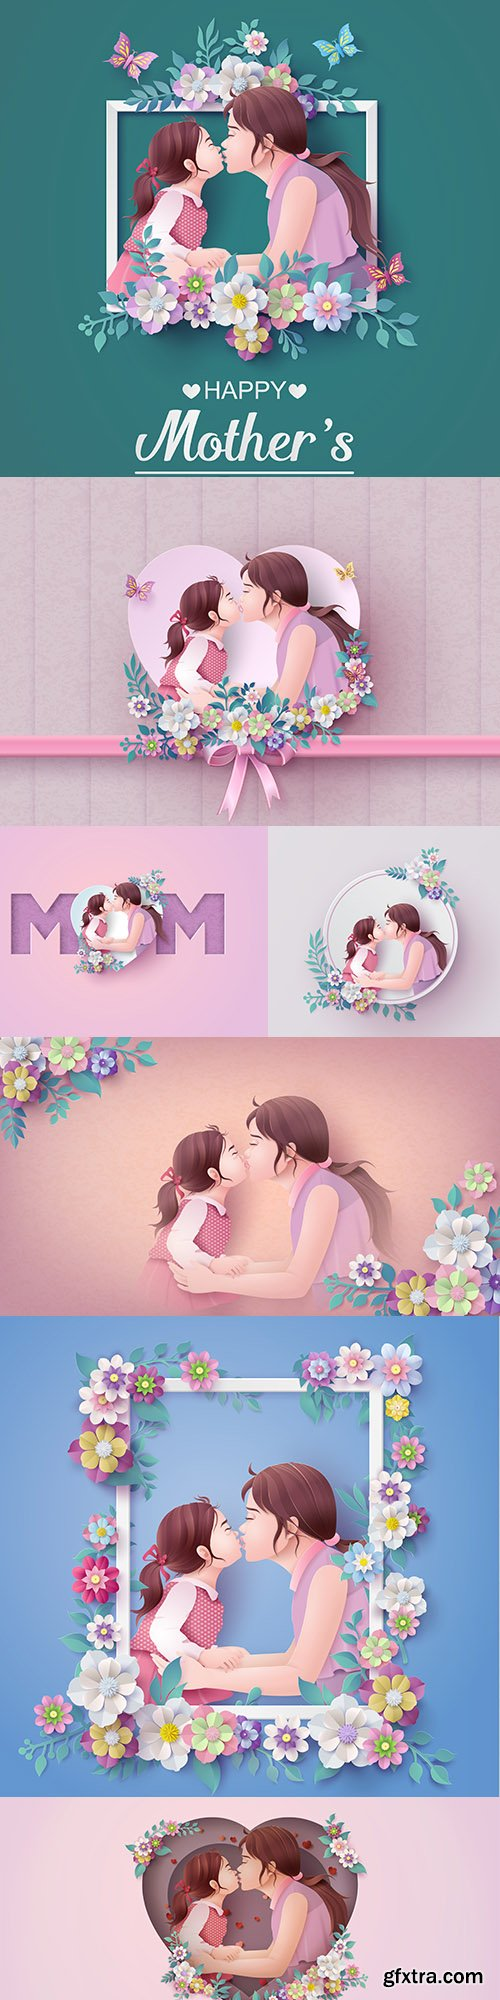 Mother's day happy mother with child illustration